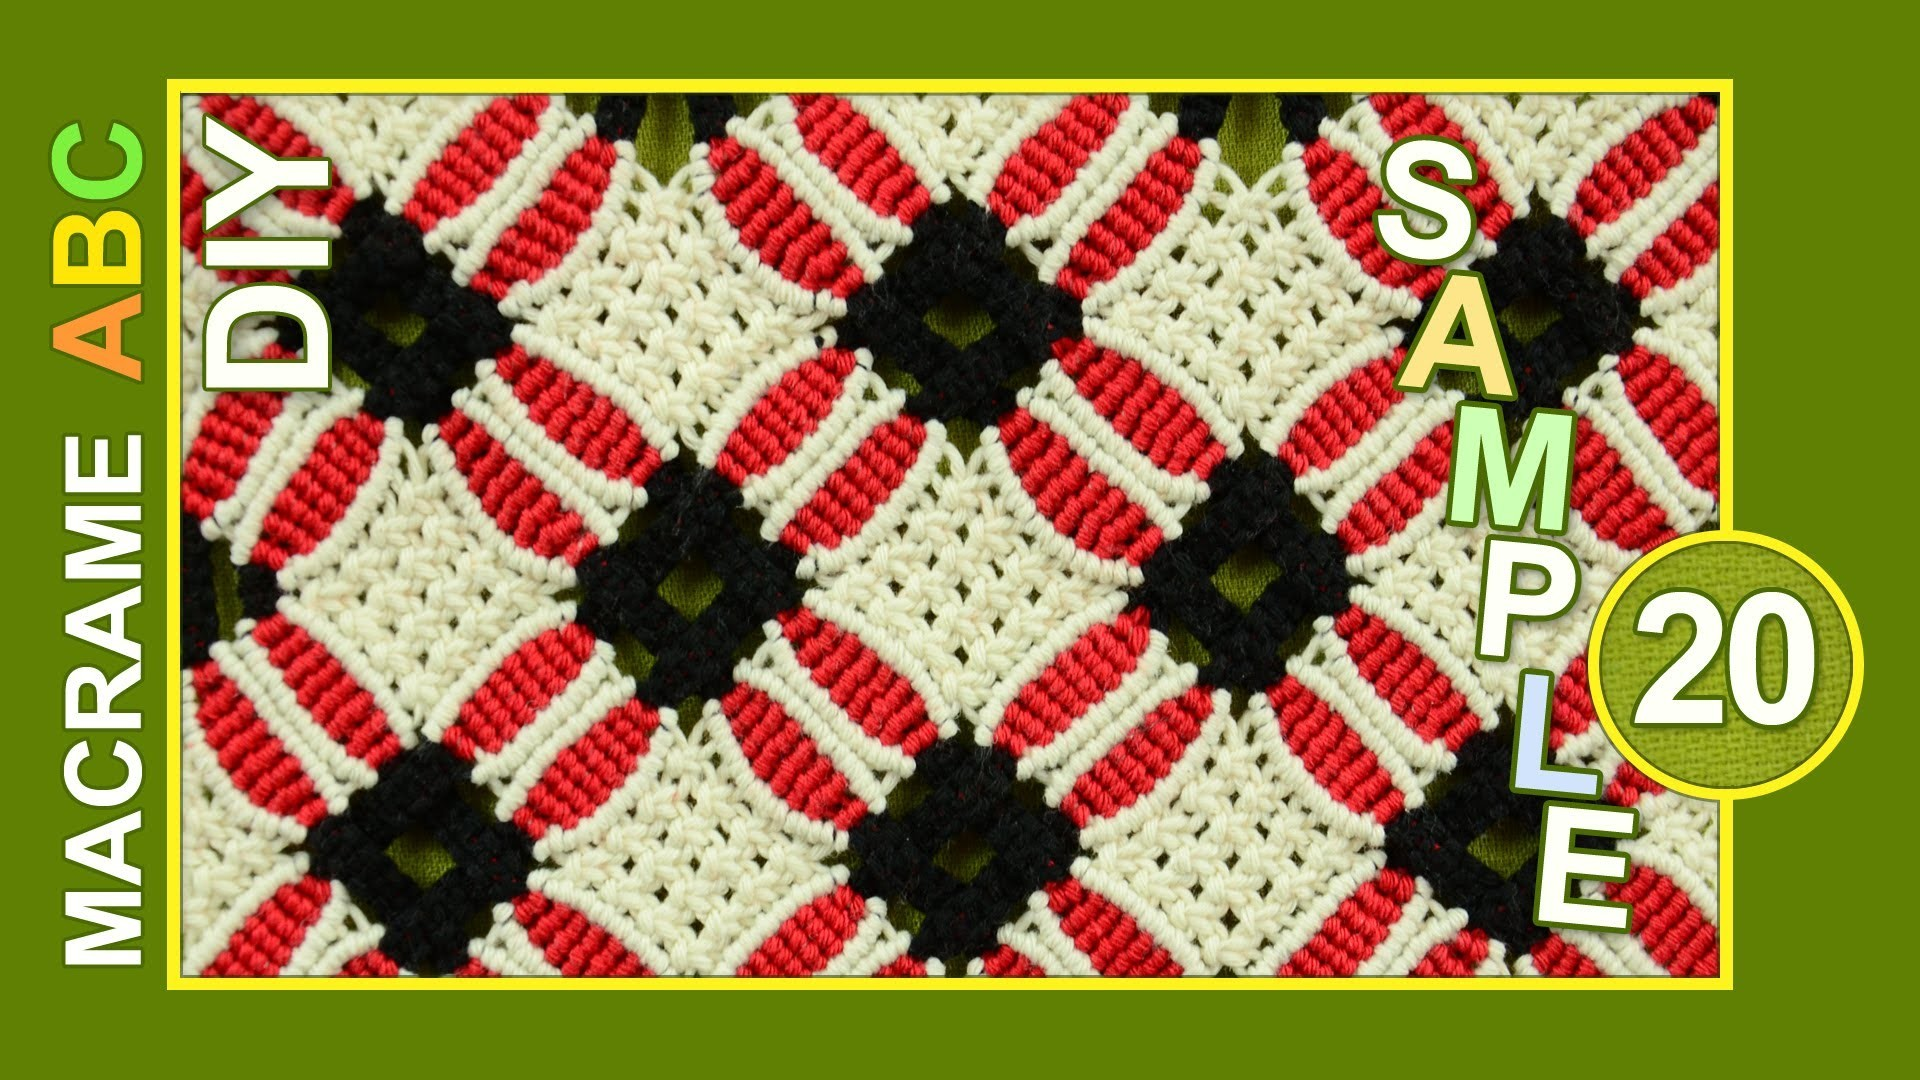 Macrame ABC - pattern sample #20